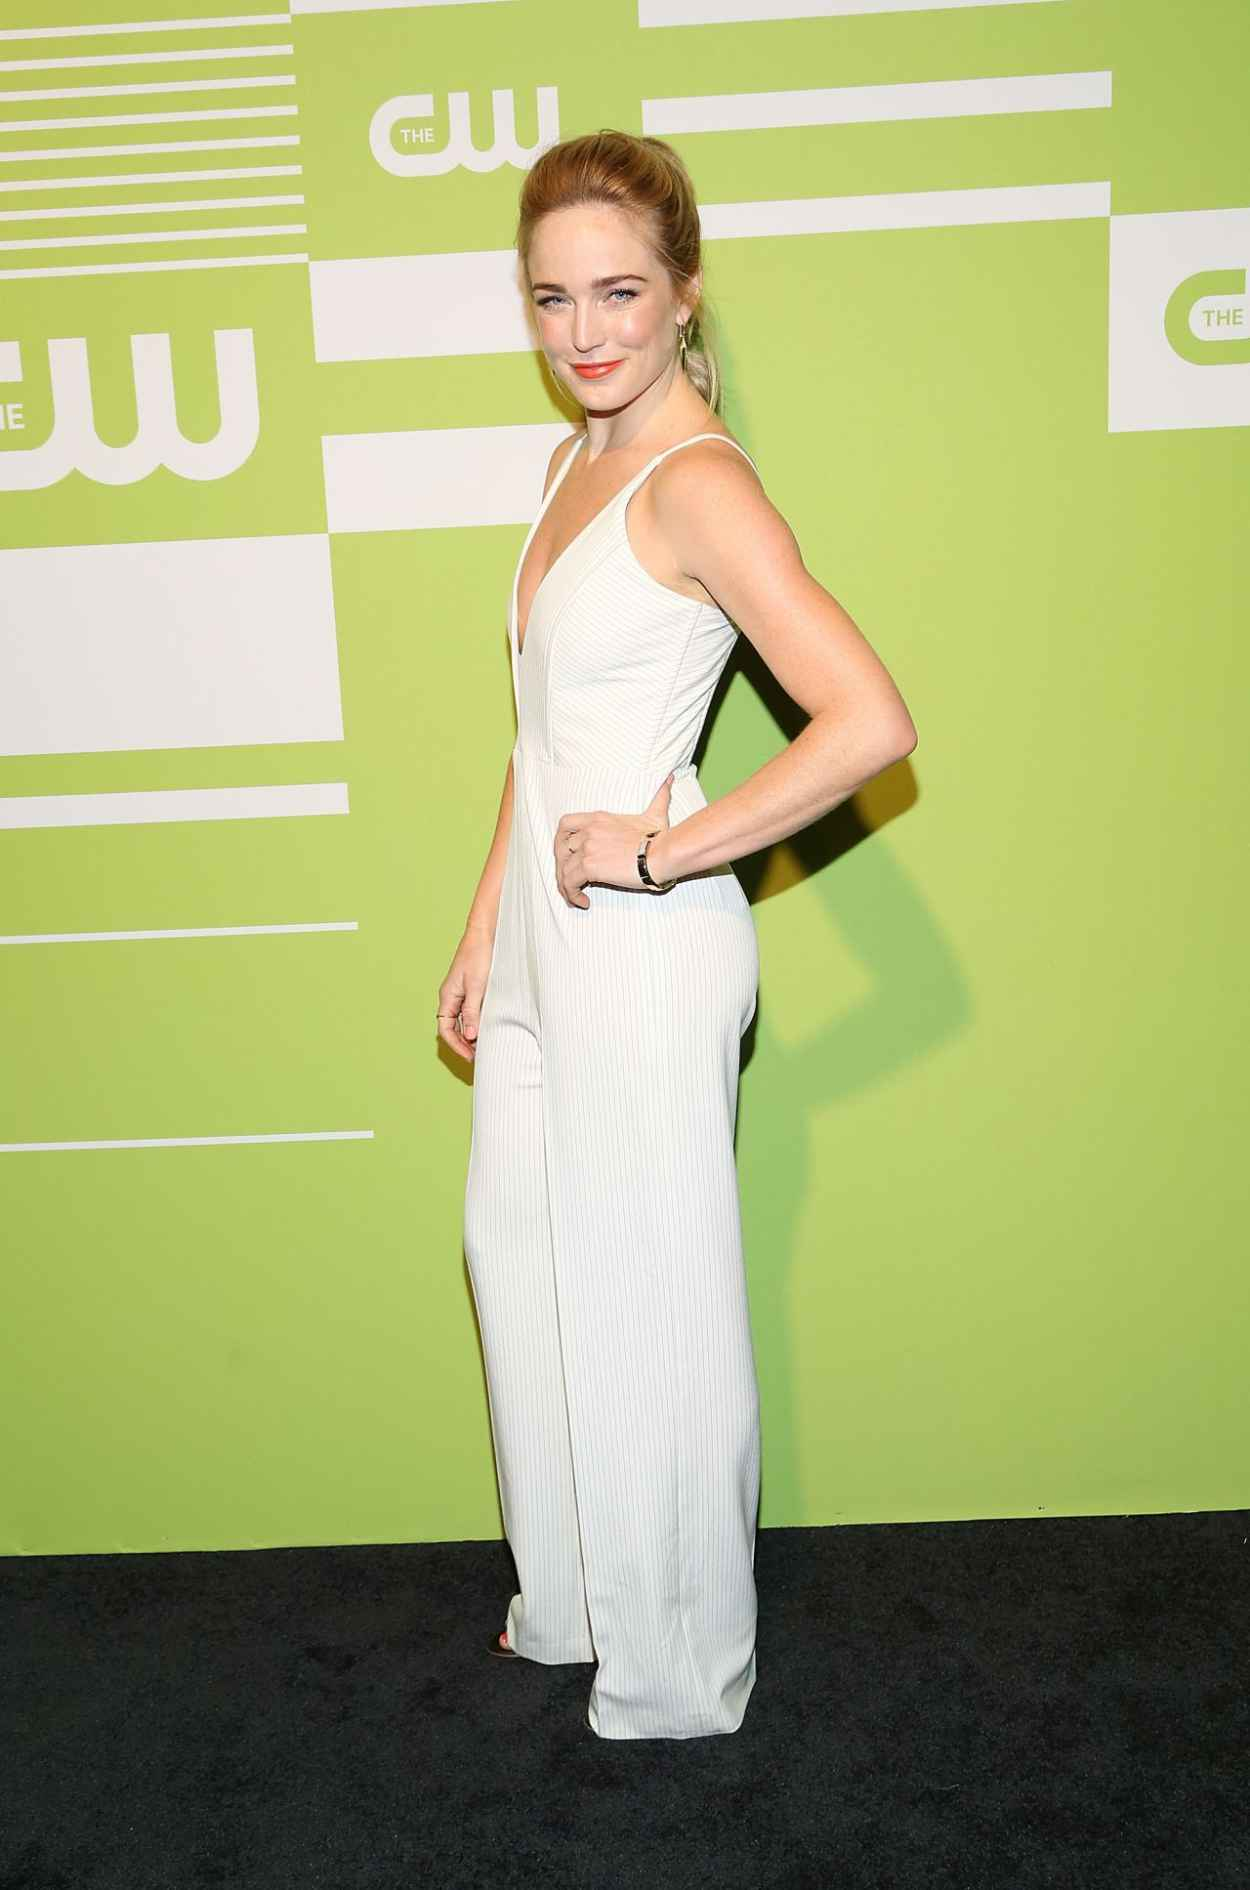 CAITY LOTZ at CW Networks 2015 Upfront in New York